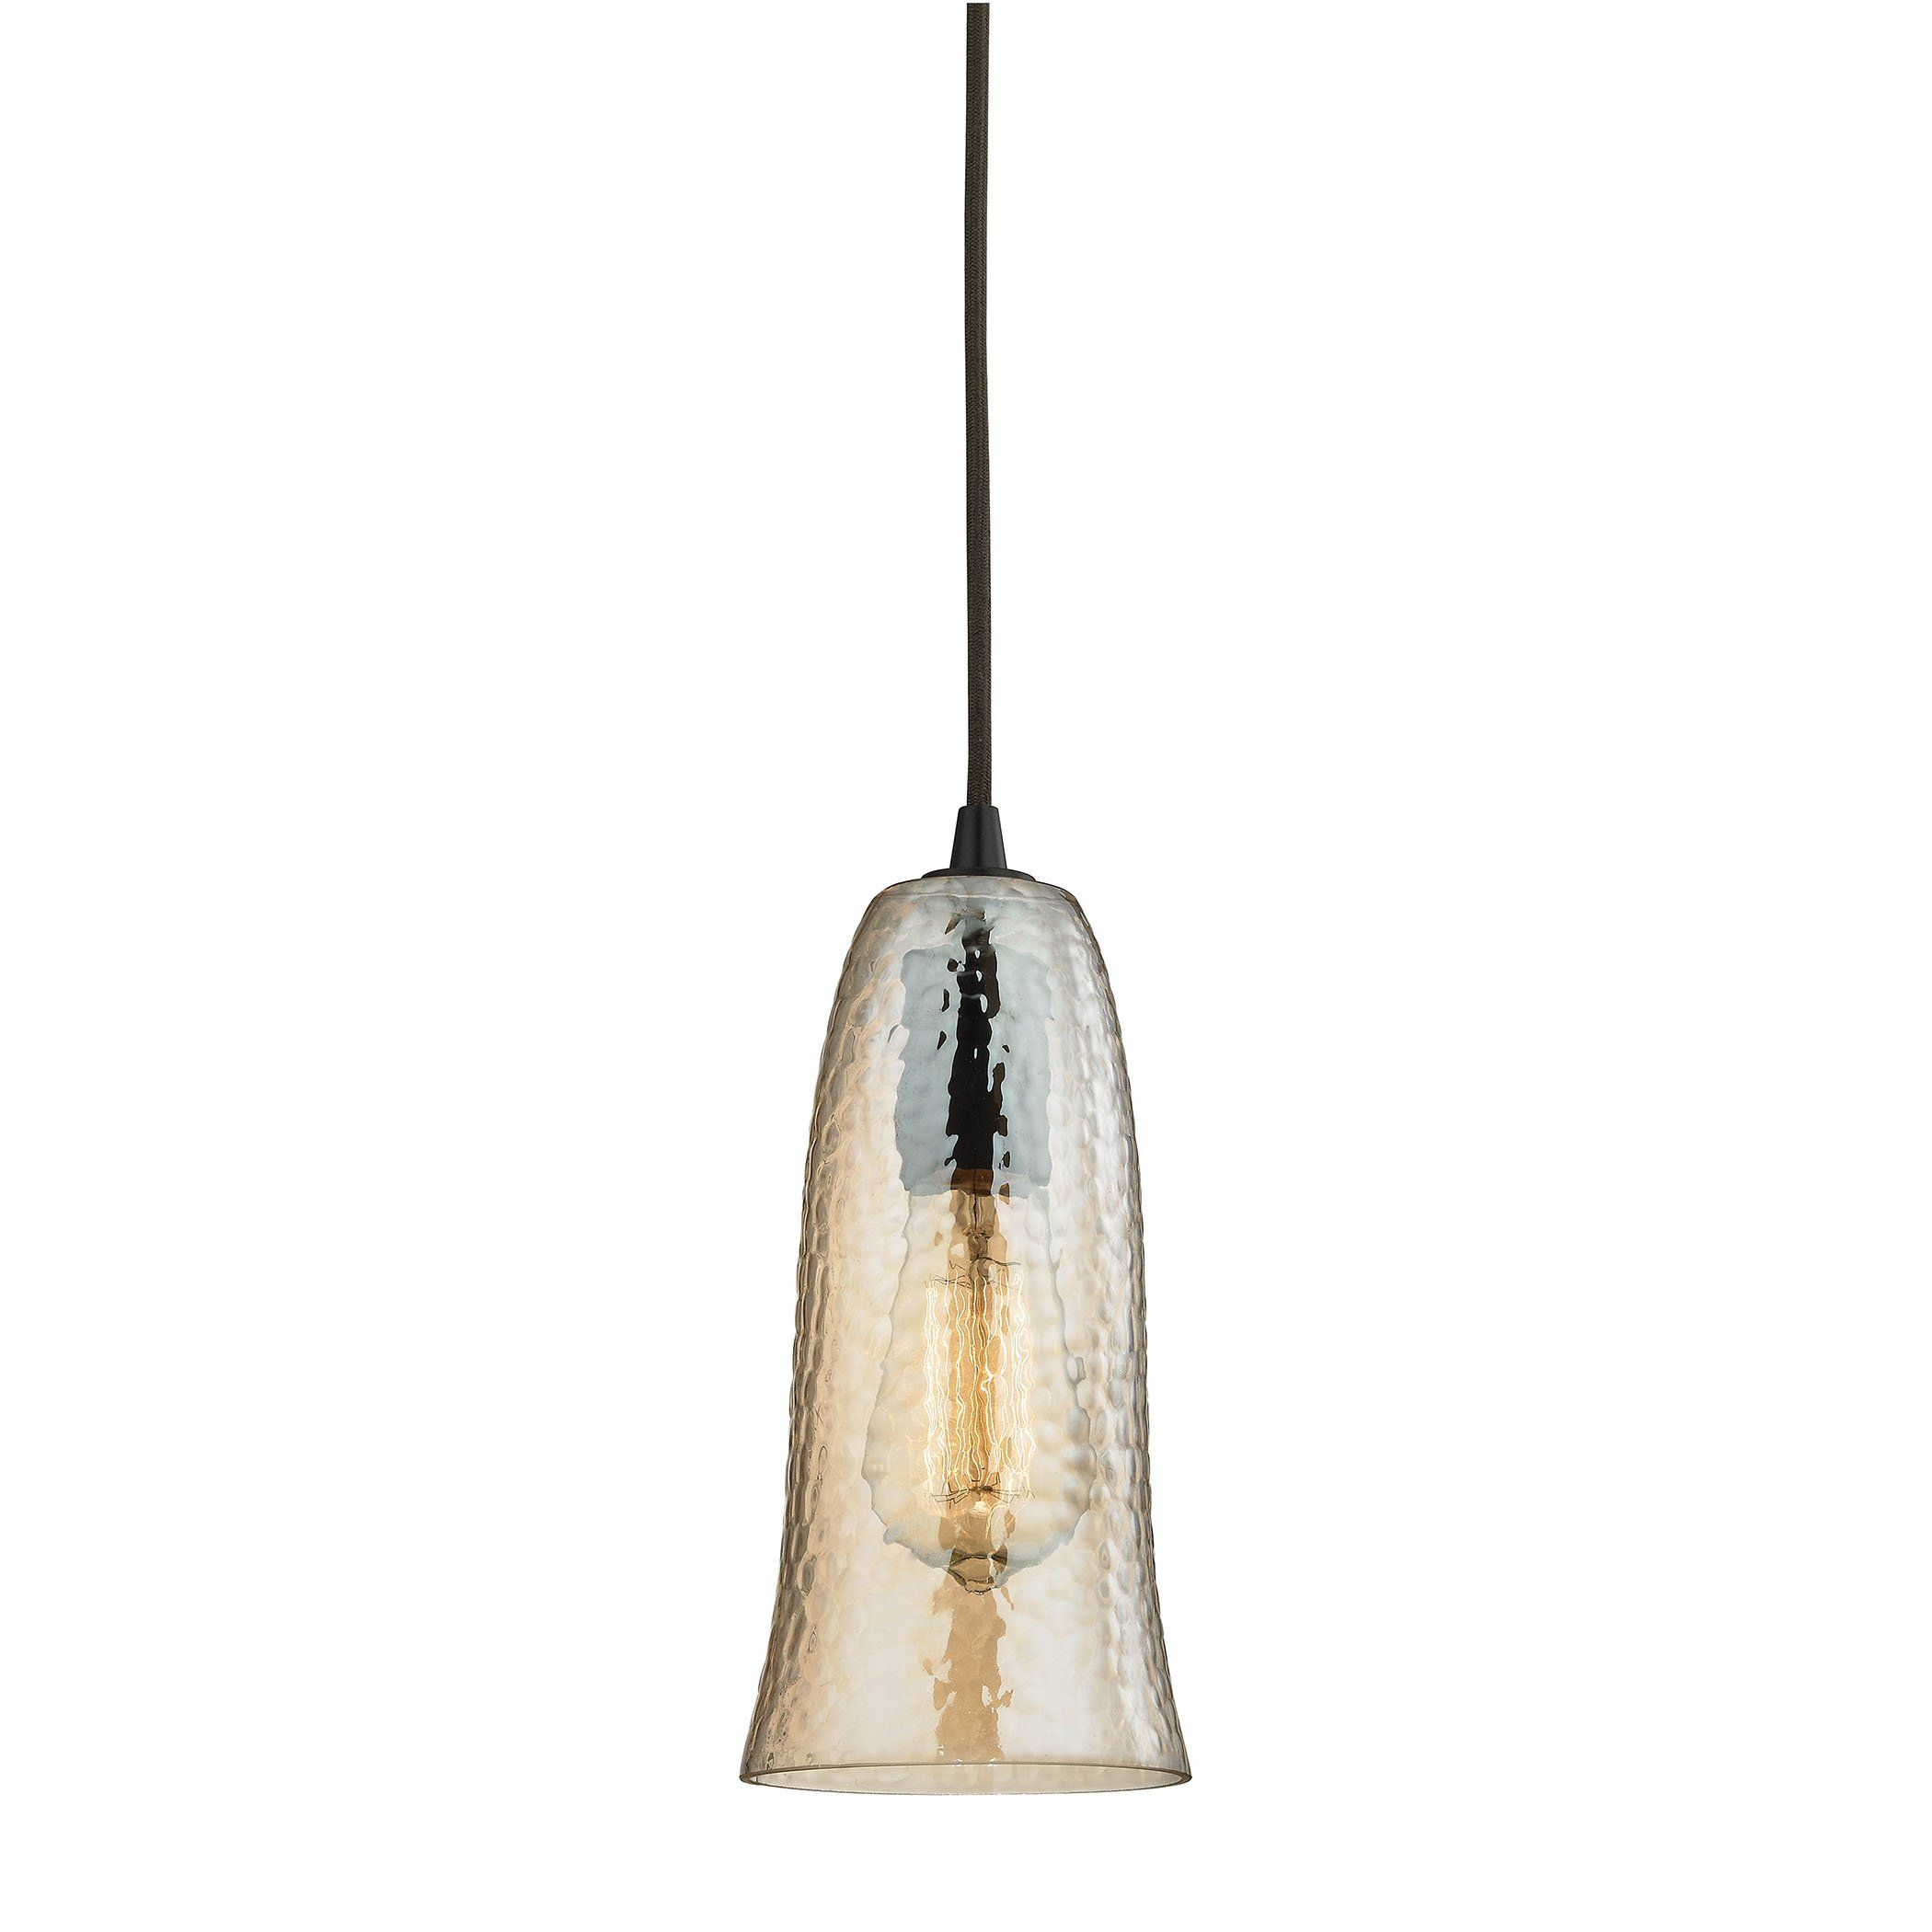 Hammered Glass Light Pendant In Oil Rubbed Bronze HAMP